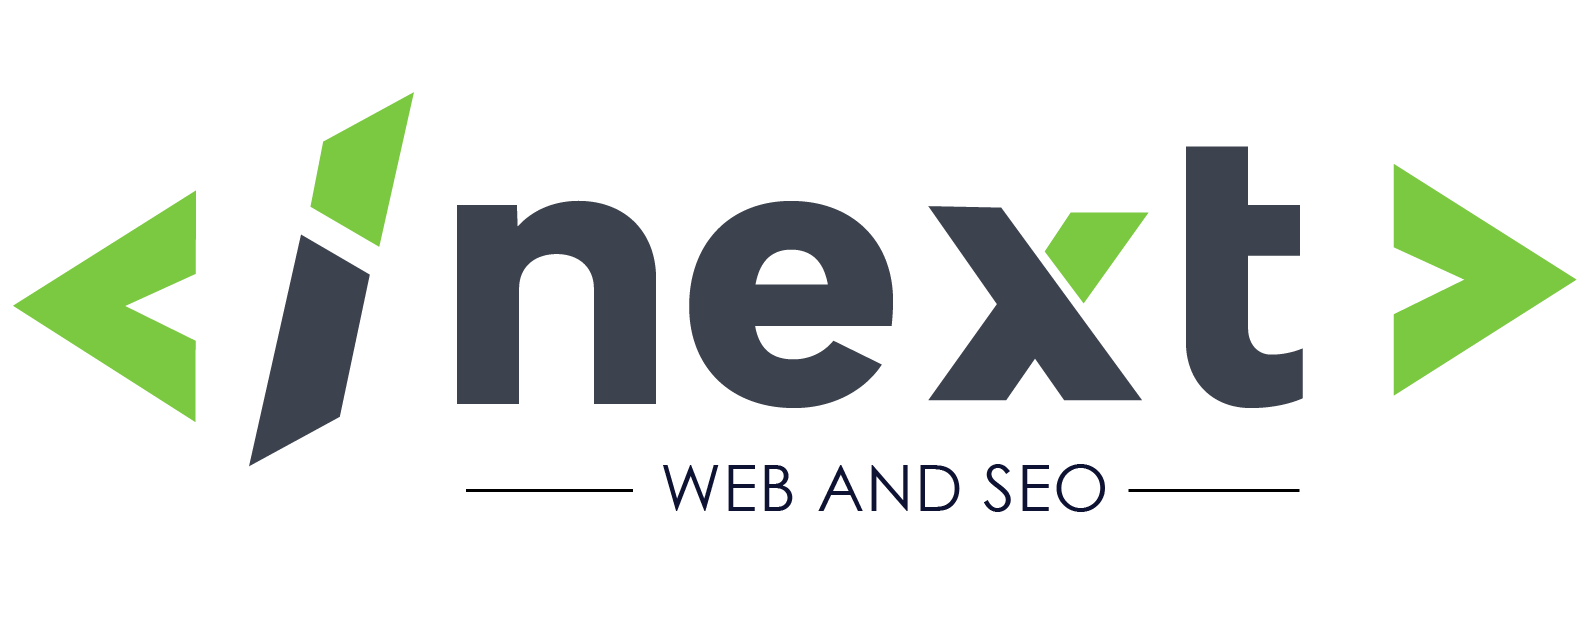 iNext Web and SEO